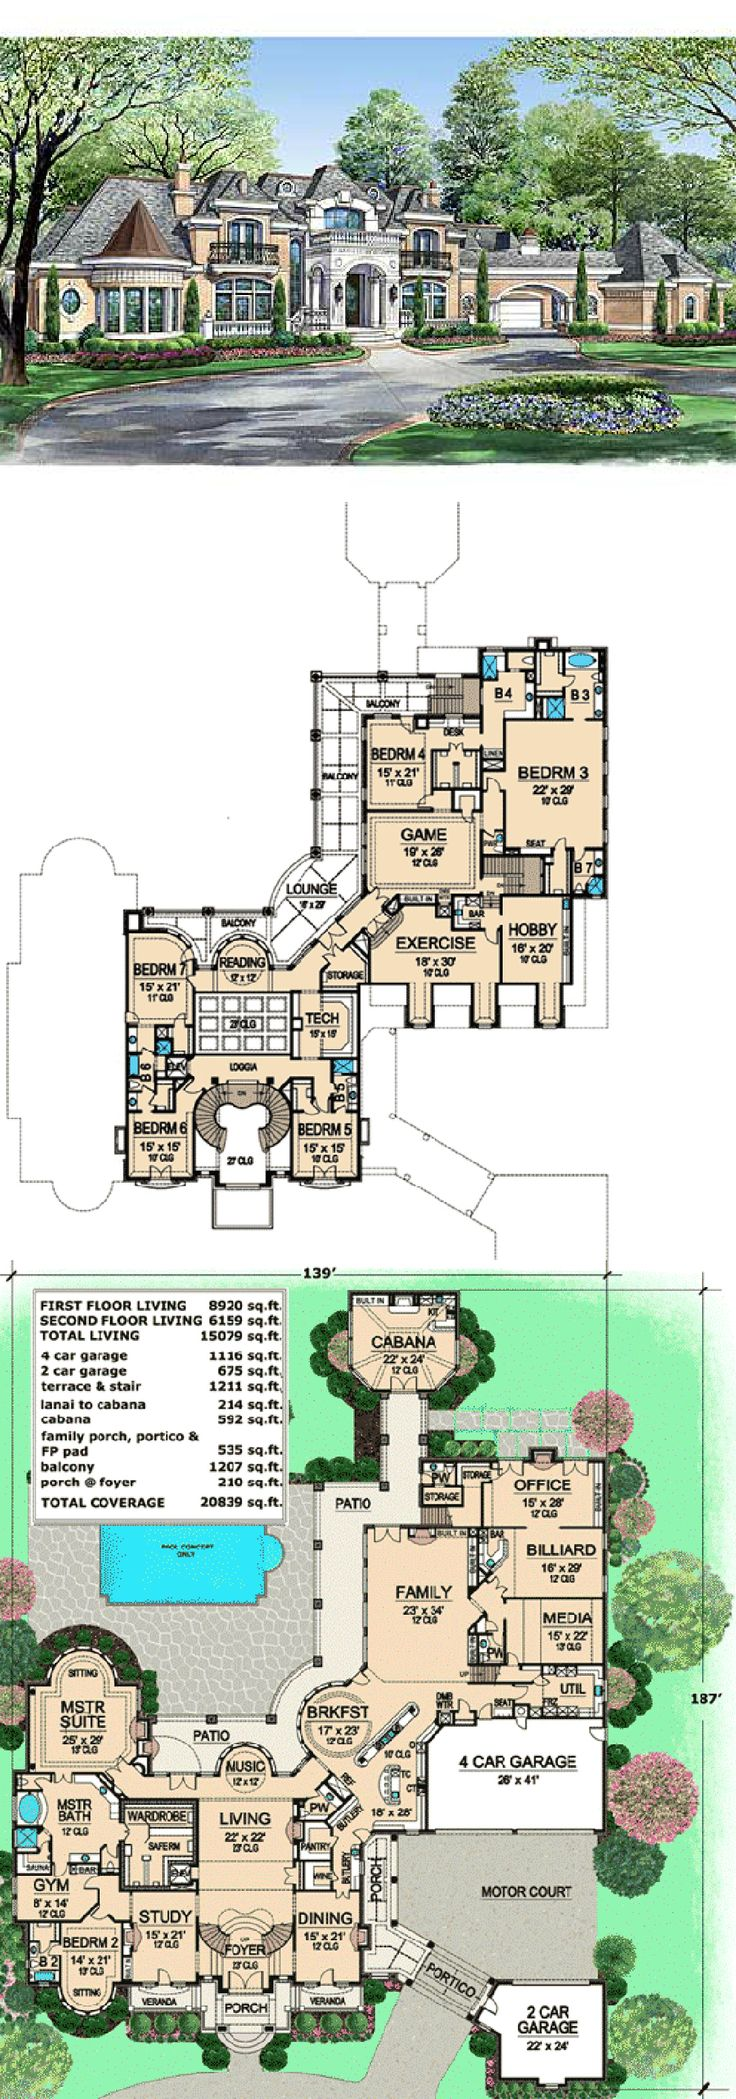 WOAHHHH Estate Home Plan with Cabana Room